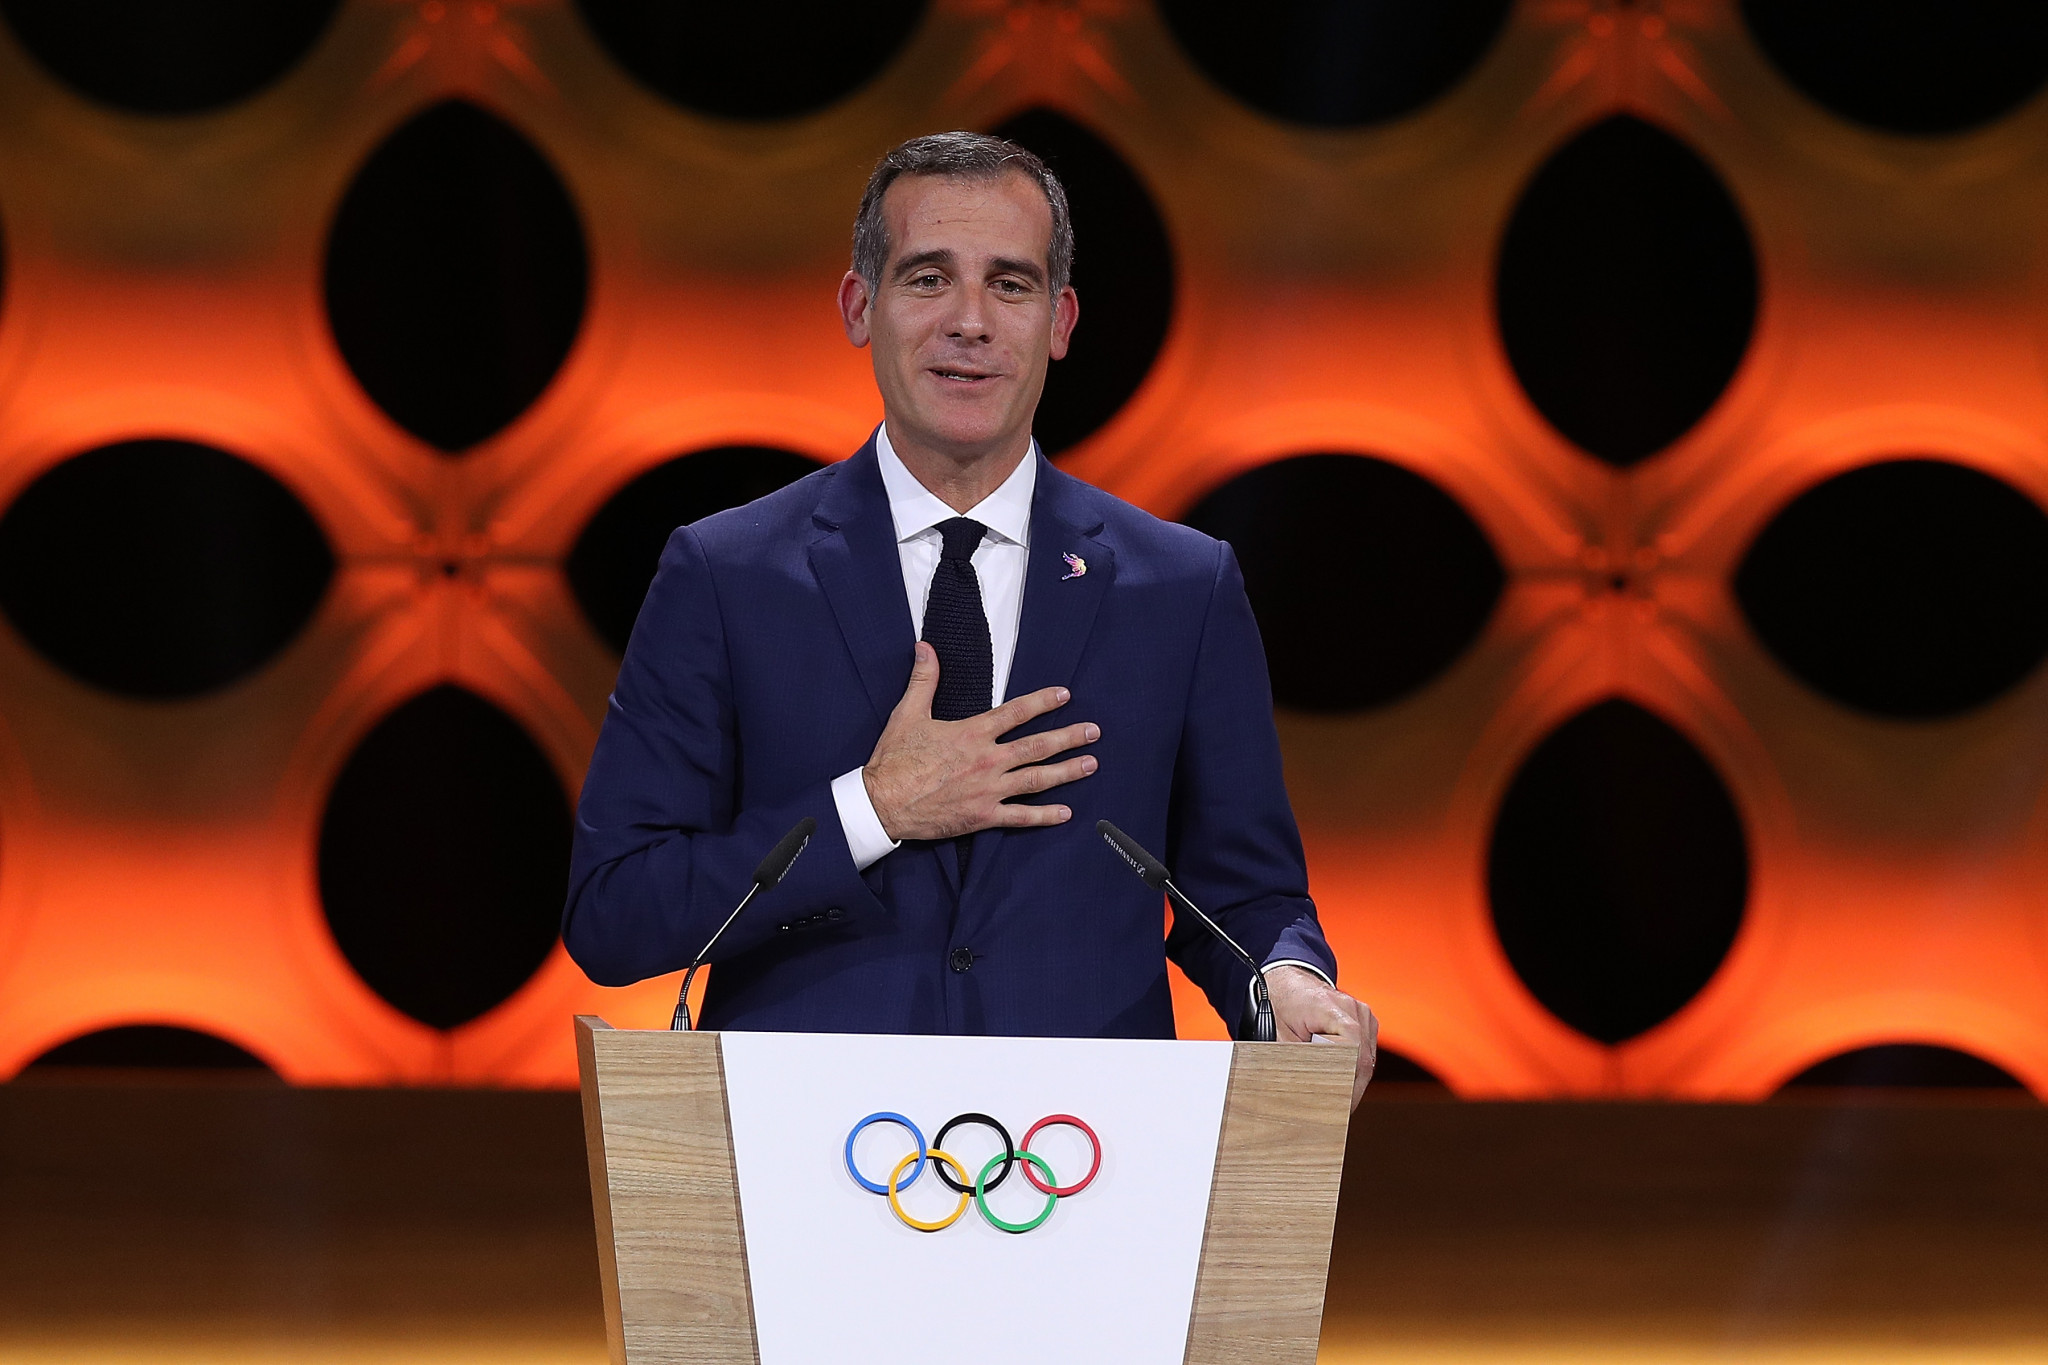 Los Angeles Mayor Eric Garcetti is expected to sign a MoU to establish the California Olympic and Paralympic Safety Command ©Getty Images